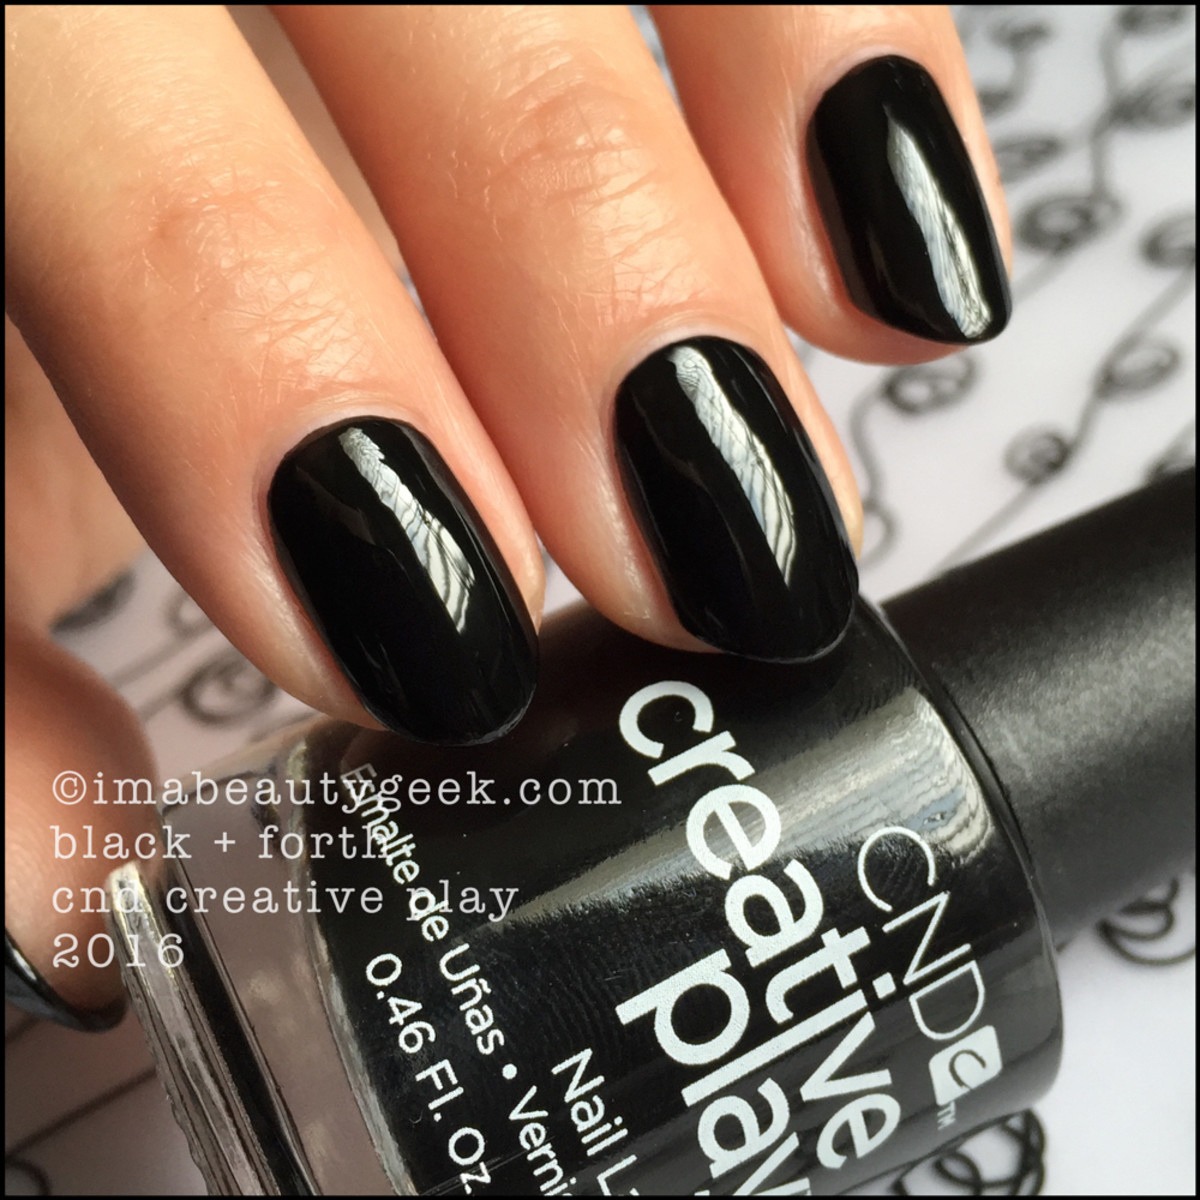 CND Creative Play Black and Forth_CND Creative Play Nail Polish Swatches 2016